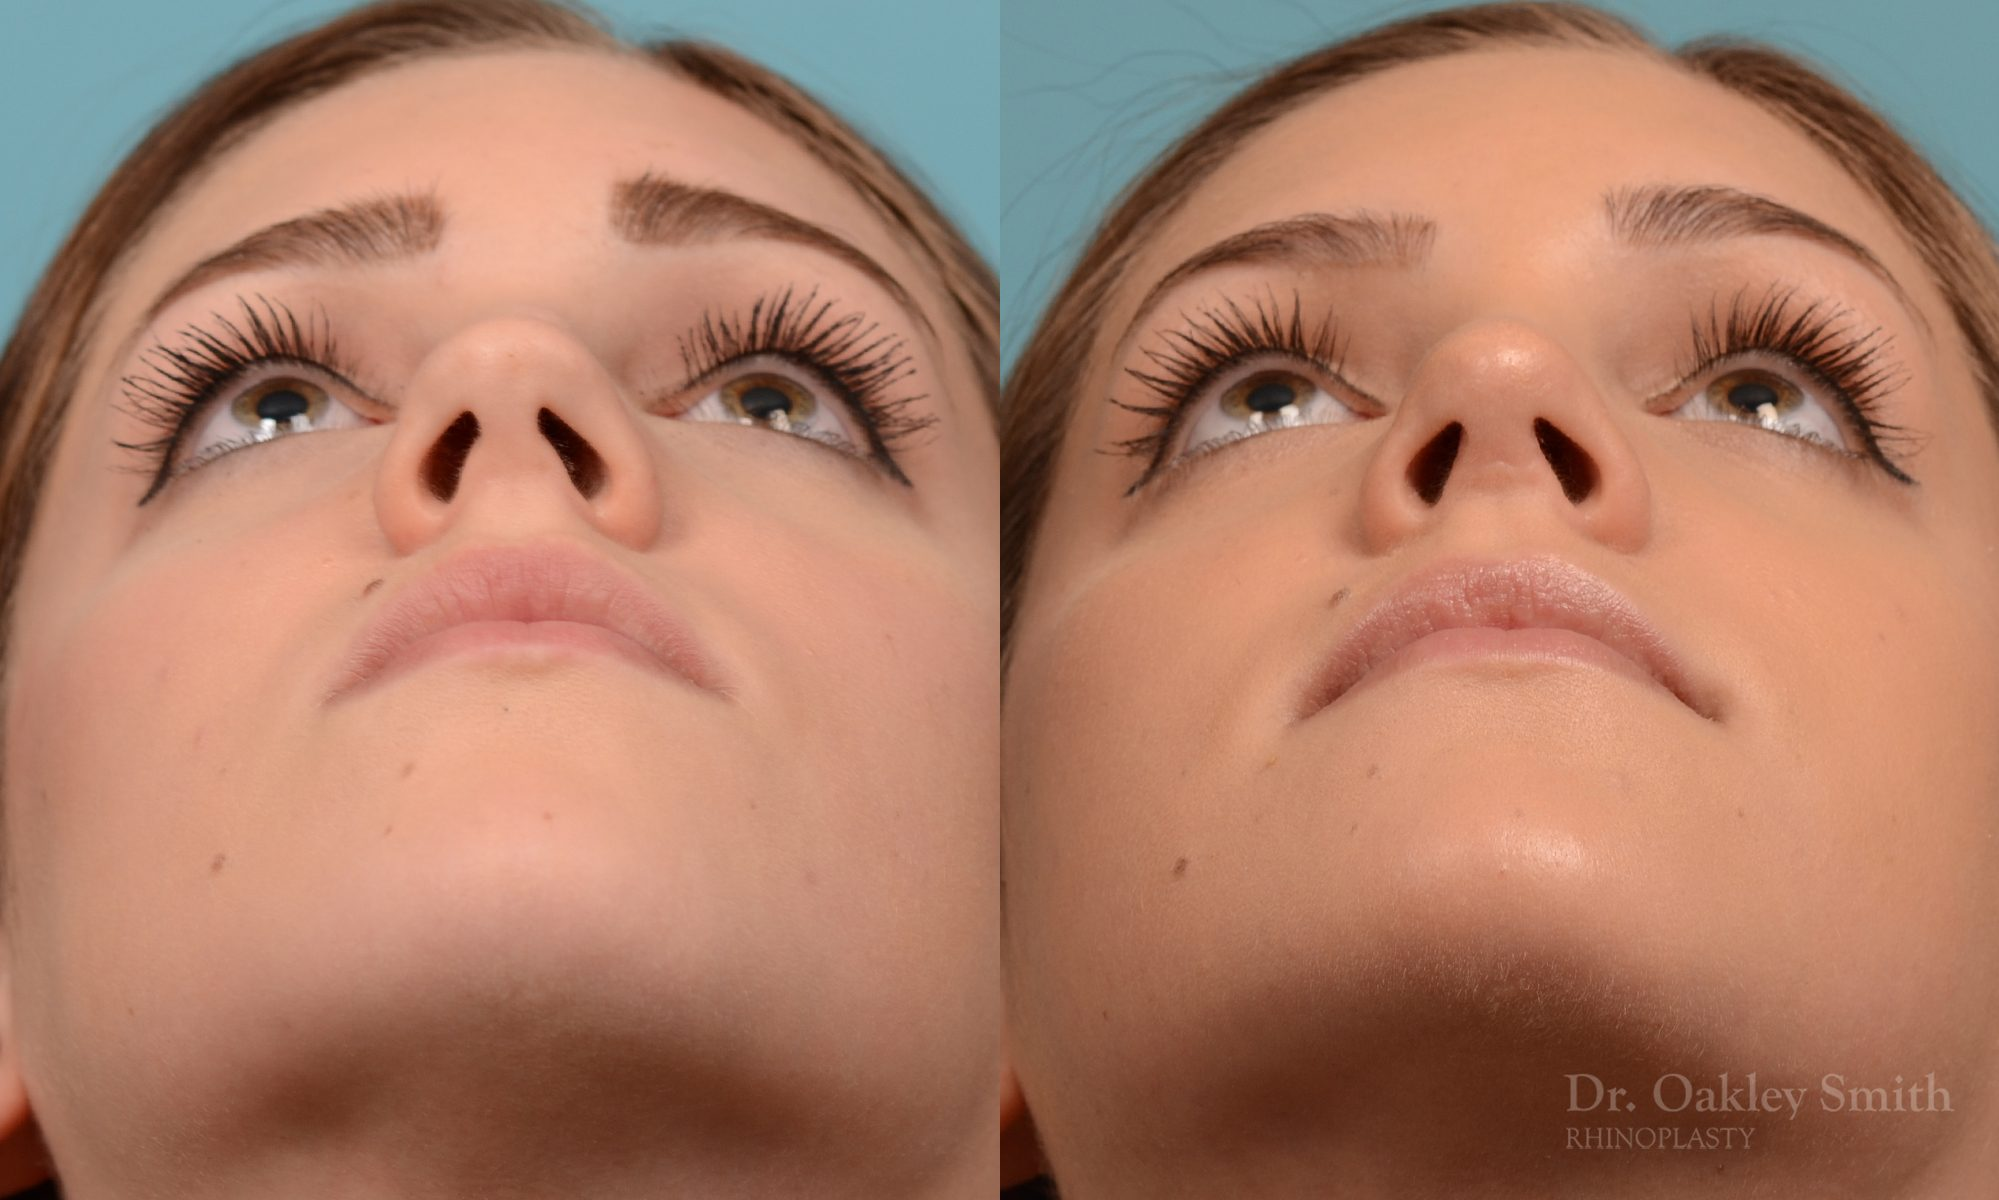 Rhinoplasty to smoothen the tip of nose